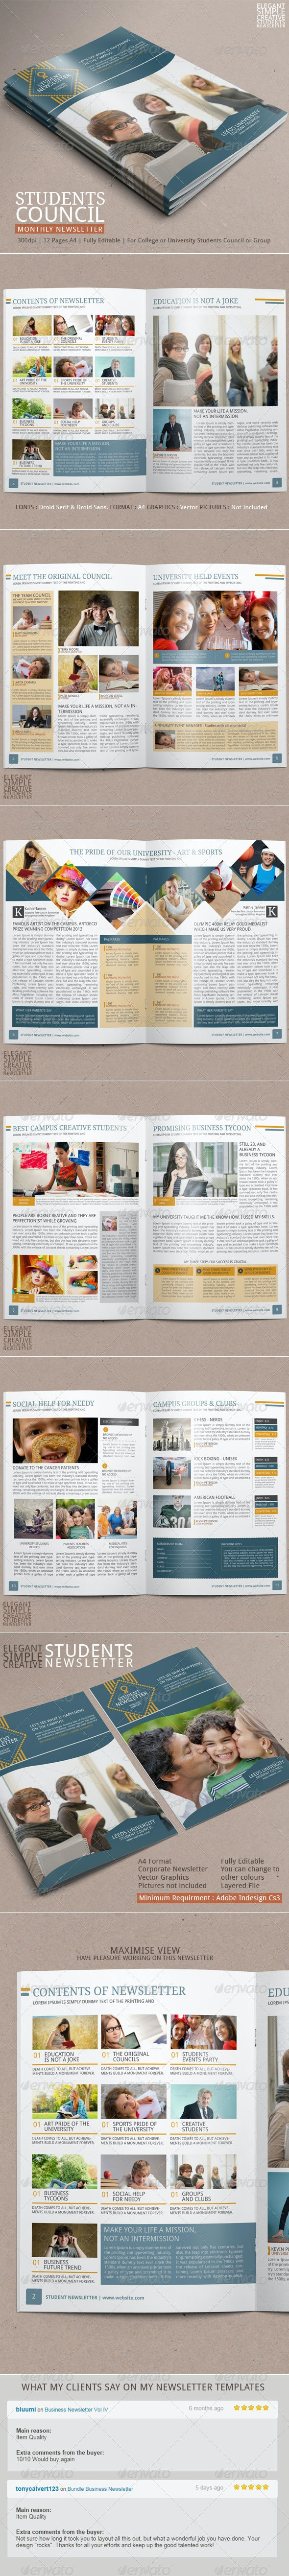 Student Newsletter Template Vol.2 - Newsletters Print Templates